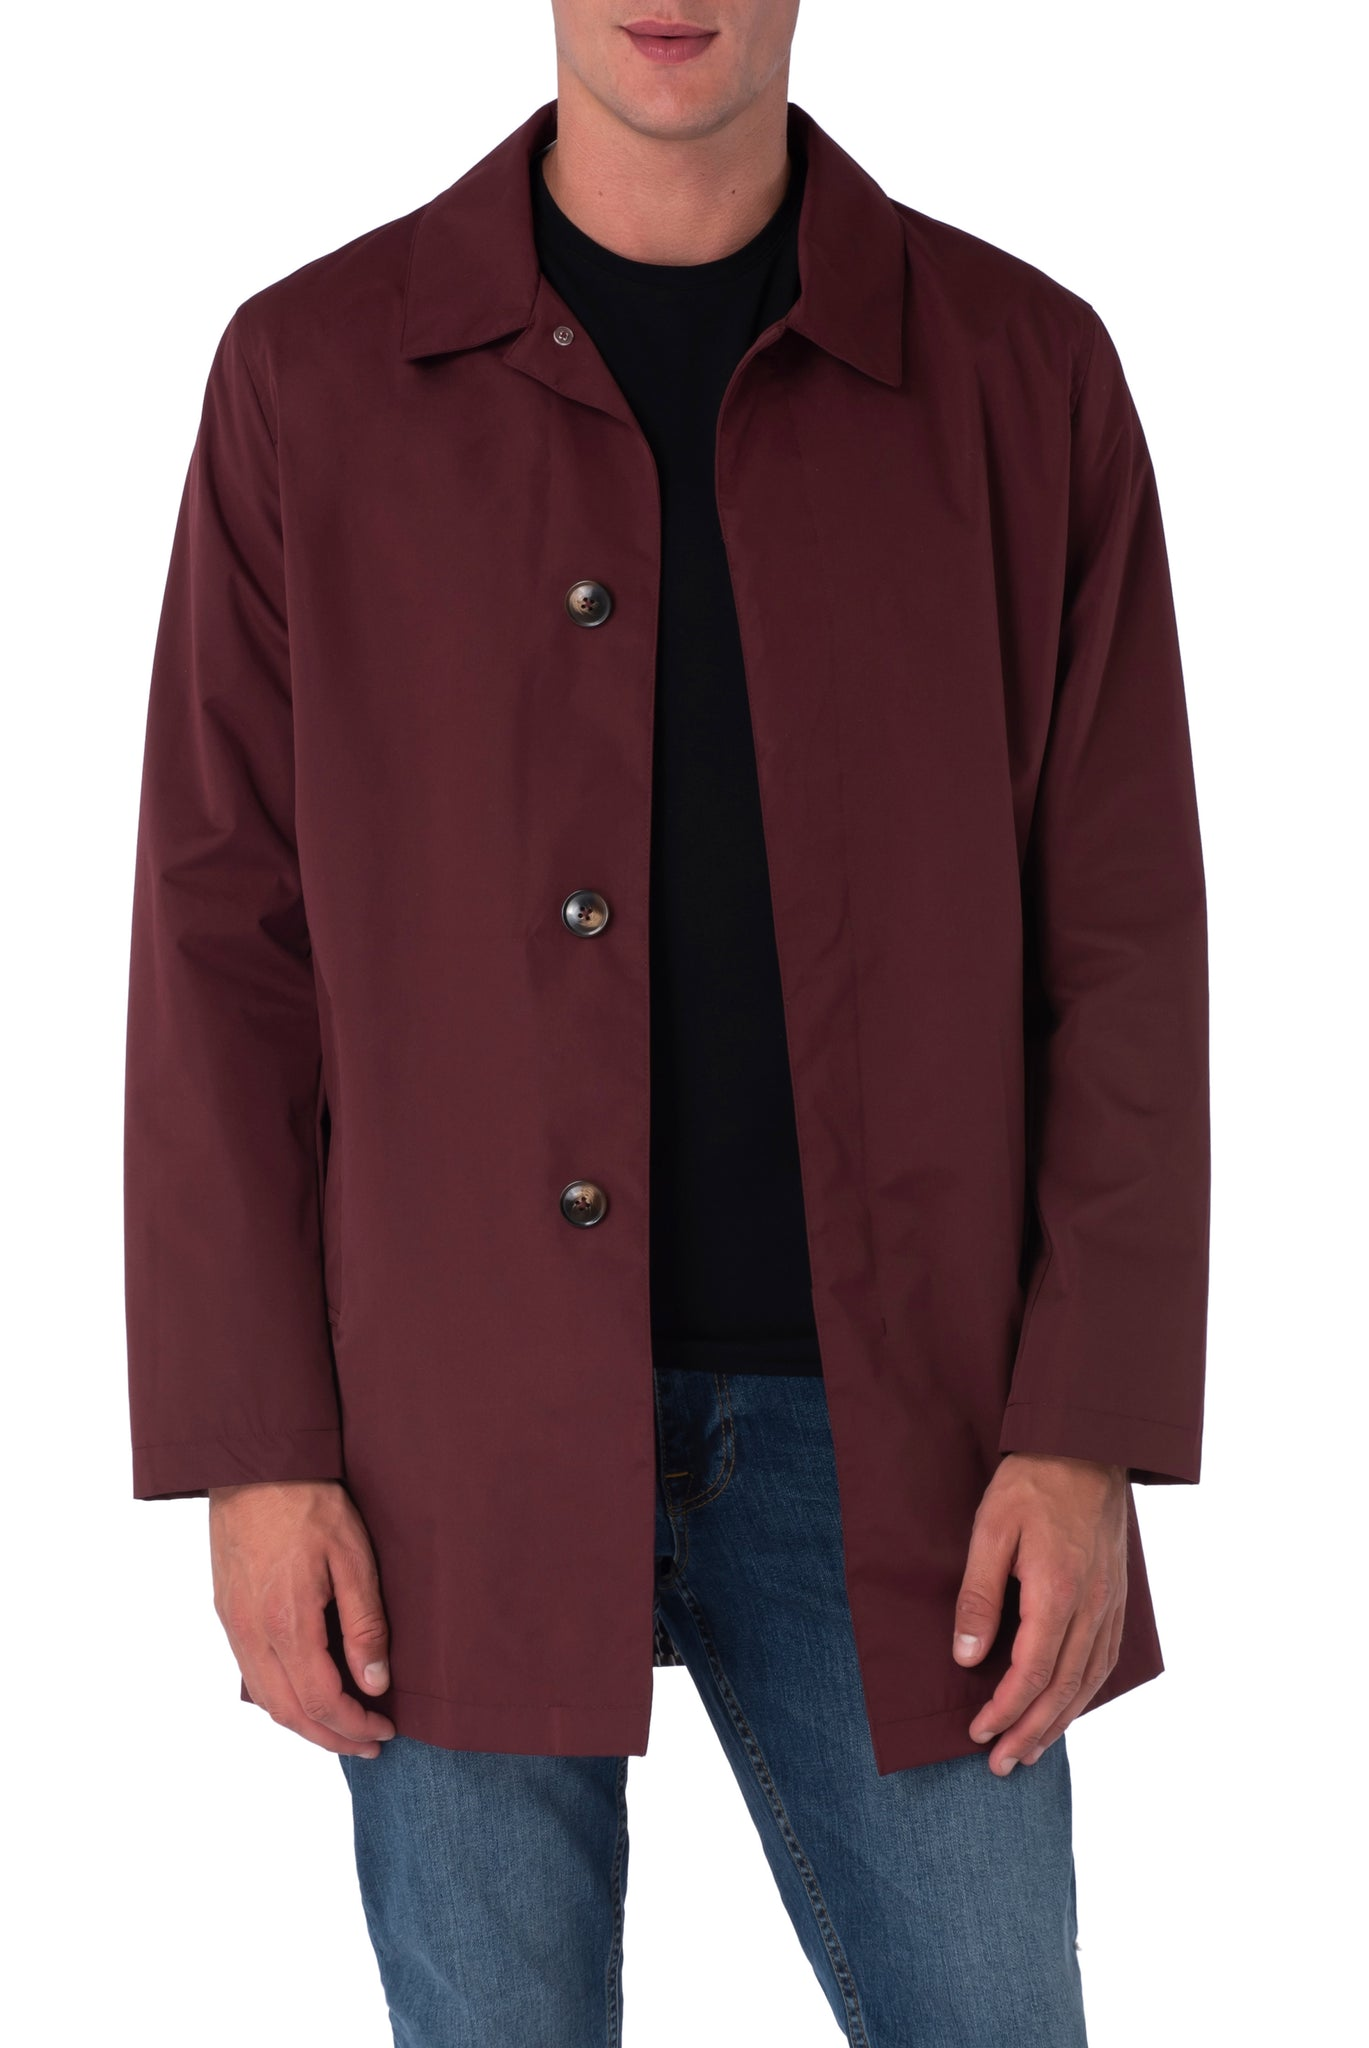 HARRISON Brick Single Breasted Trench Coat